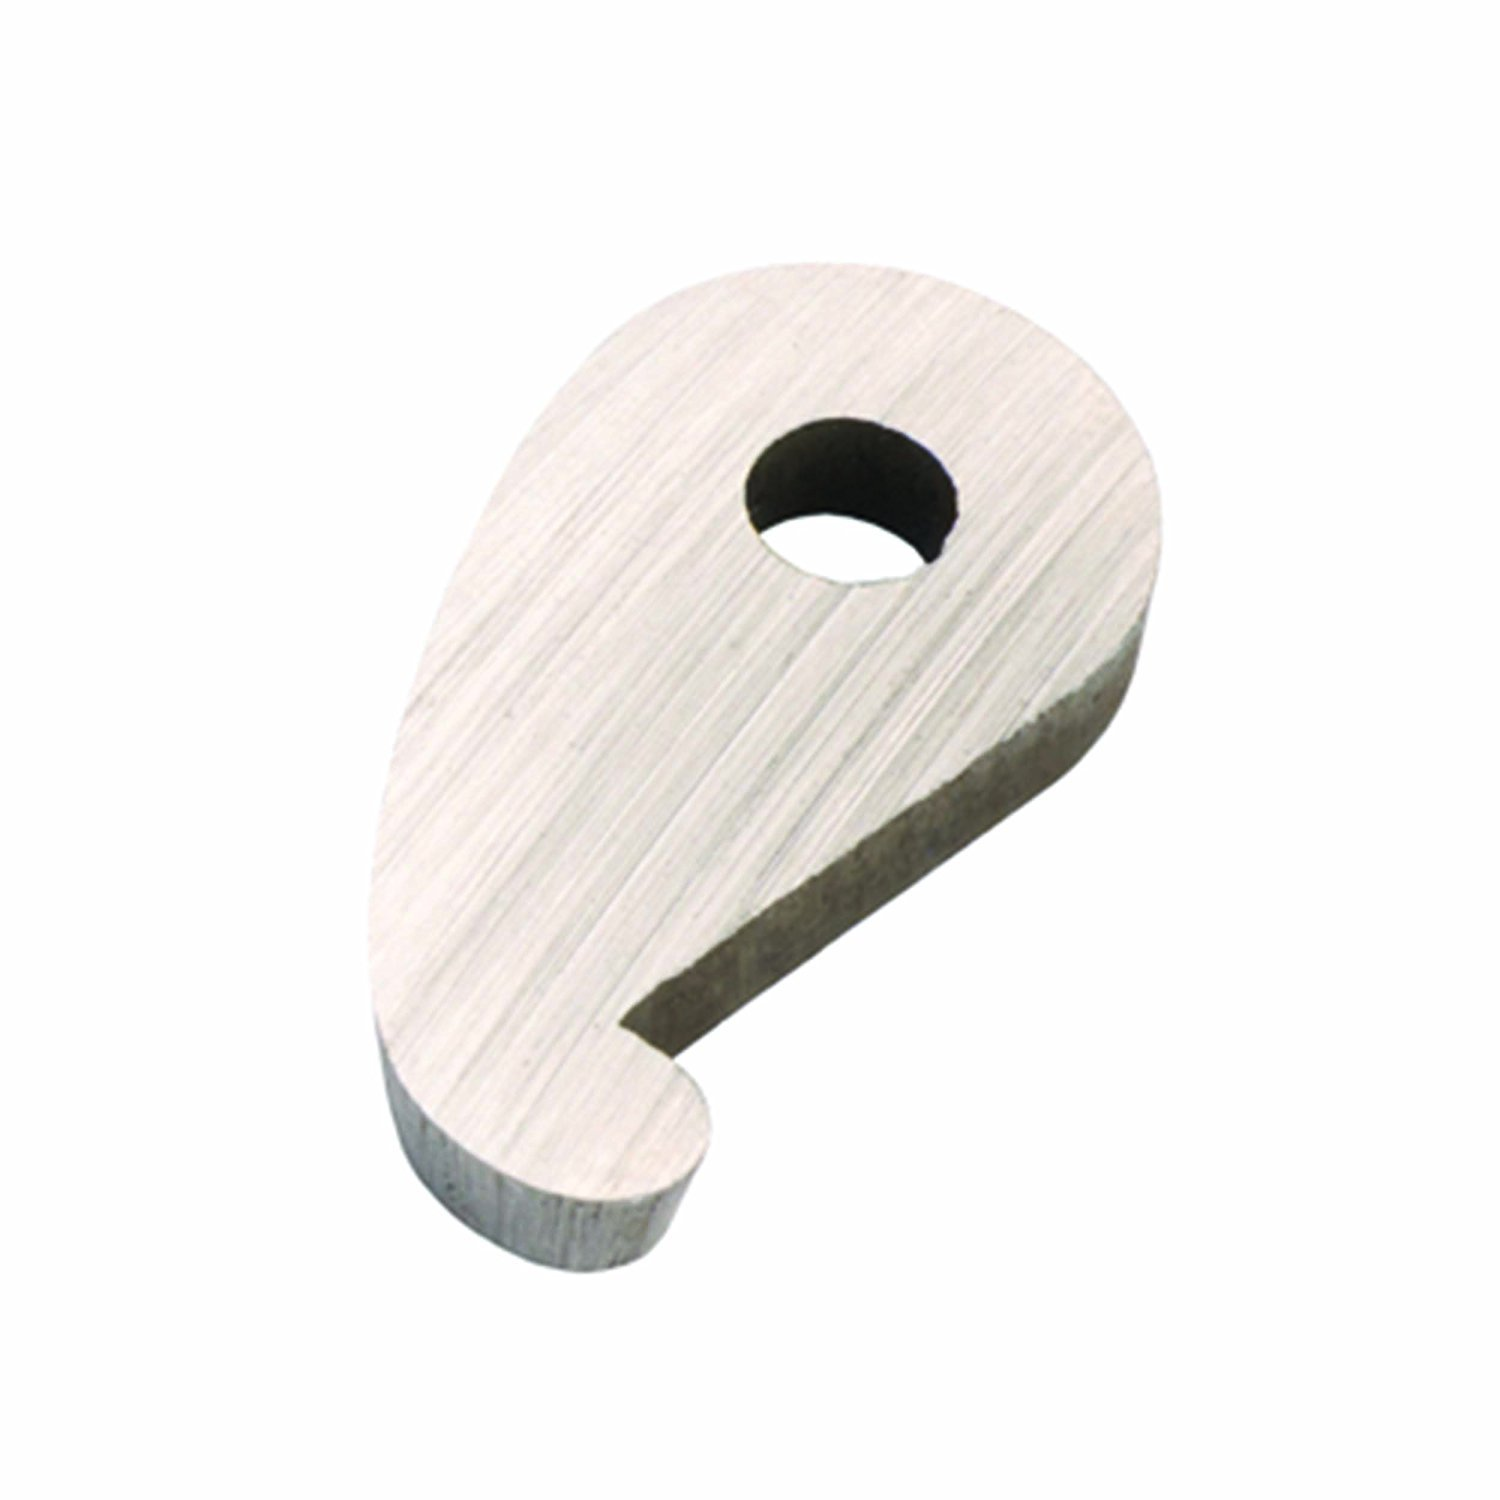 Robert Sorby RSTM-TIP7  Turnmaster High Speed Steel HSS Mushroom Replacement Cutter for Turnmaster